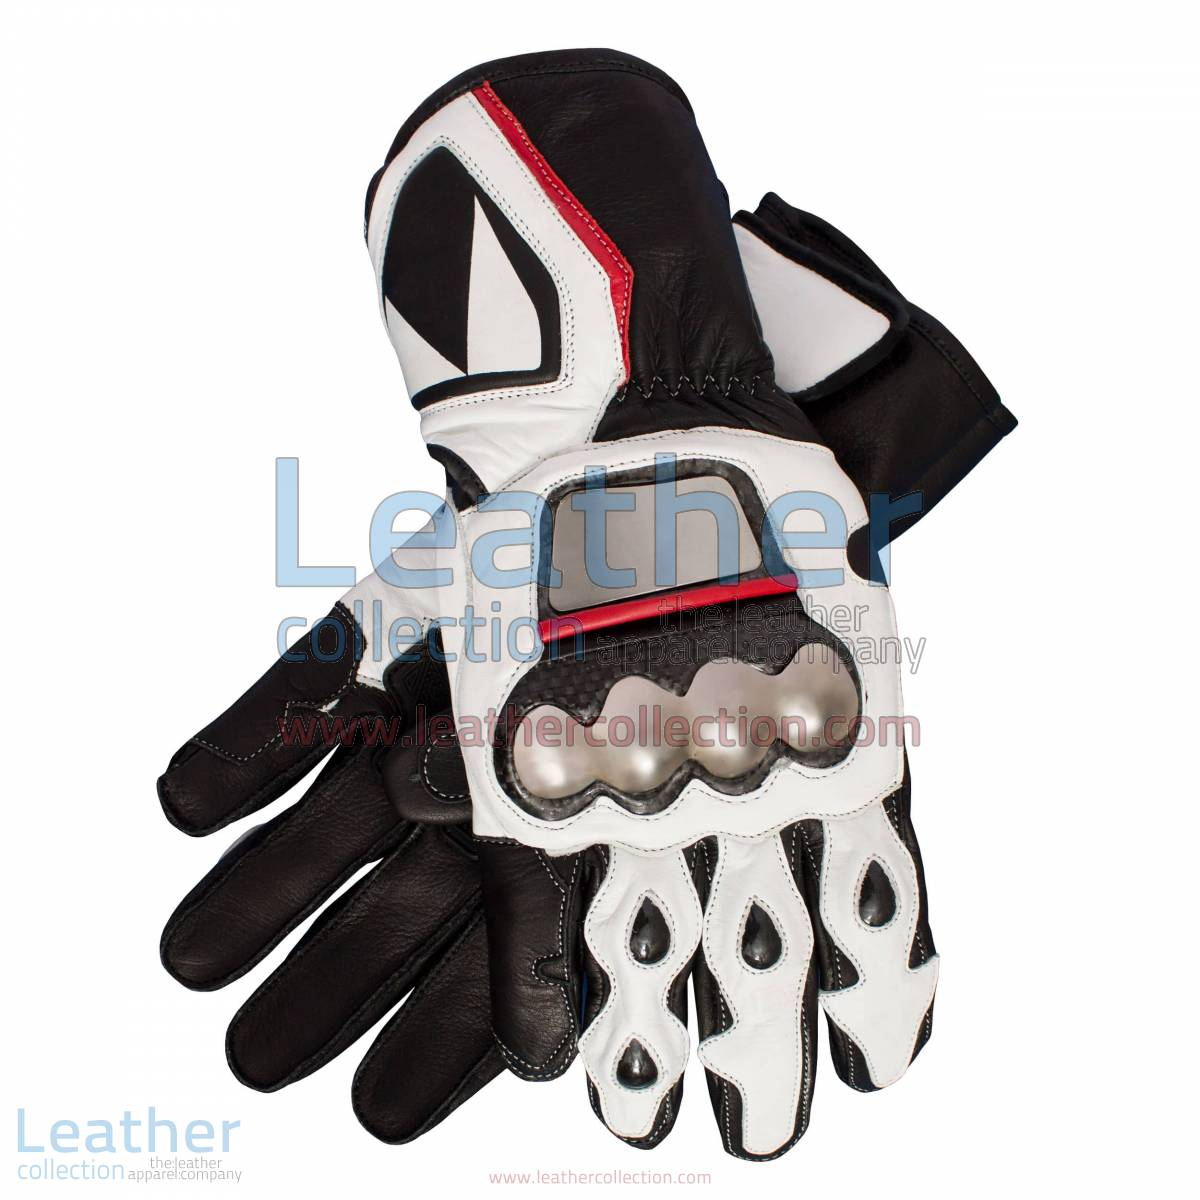 Max Biaggi Motorcycle Race Gloves | motorcycle race gloves